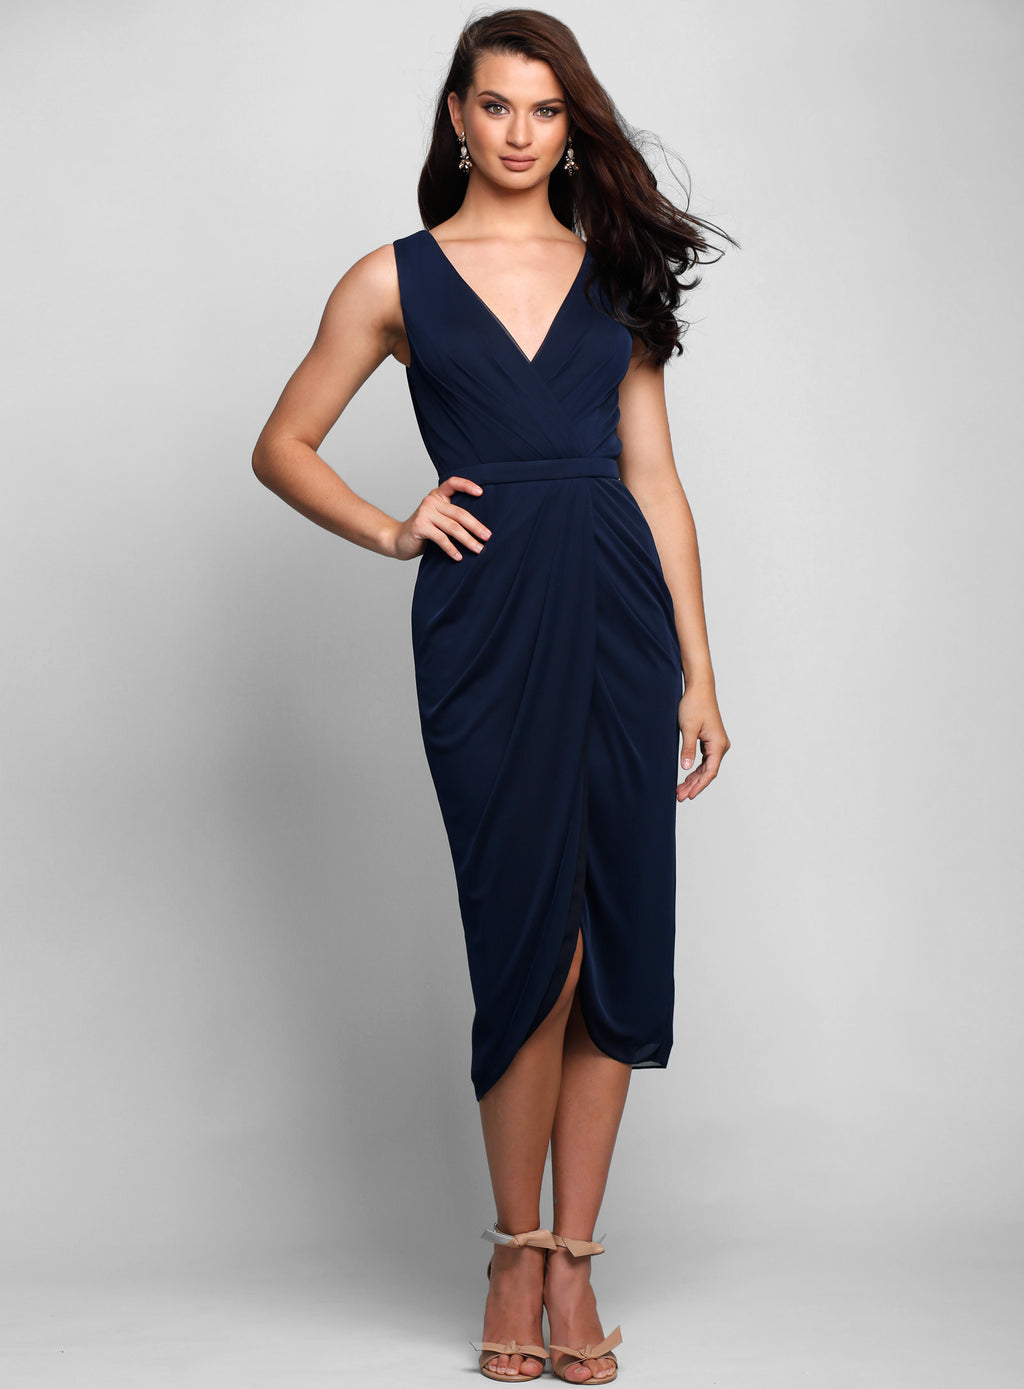 Kenny Drape Dress